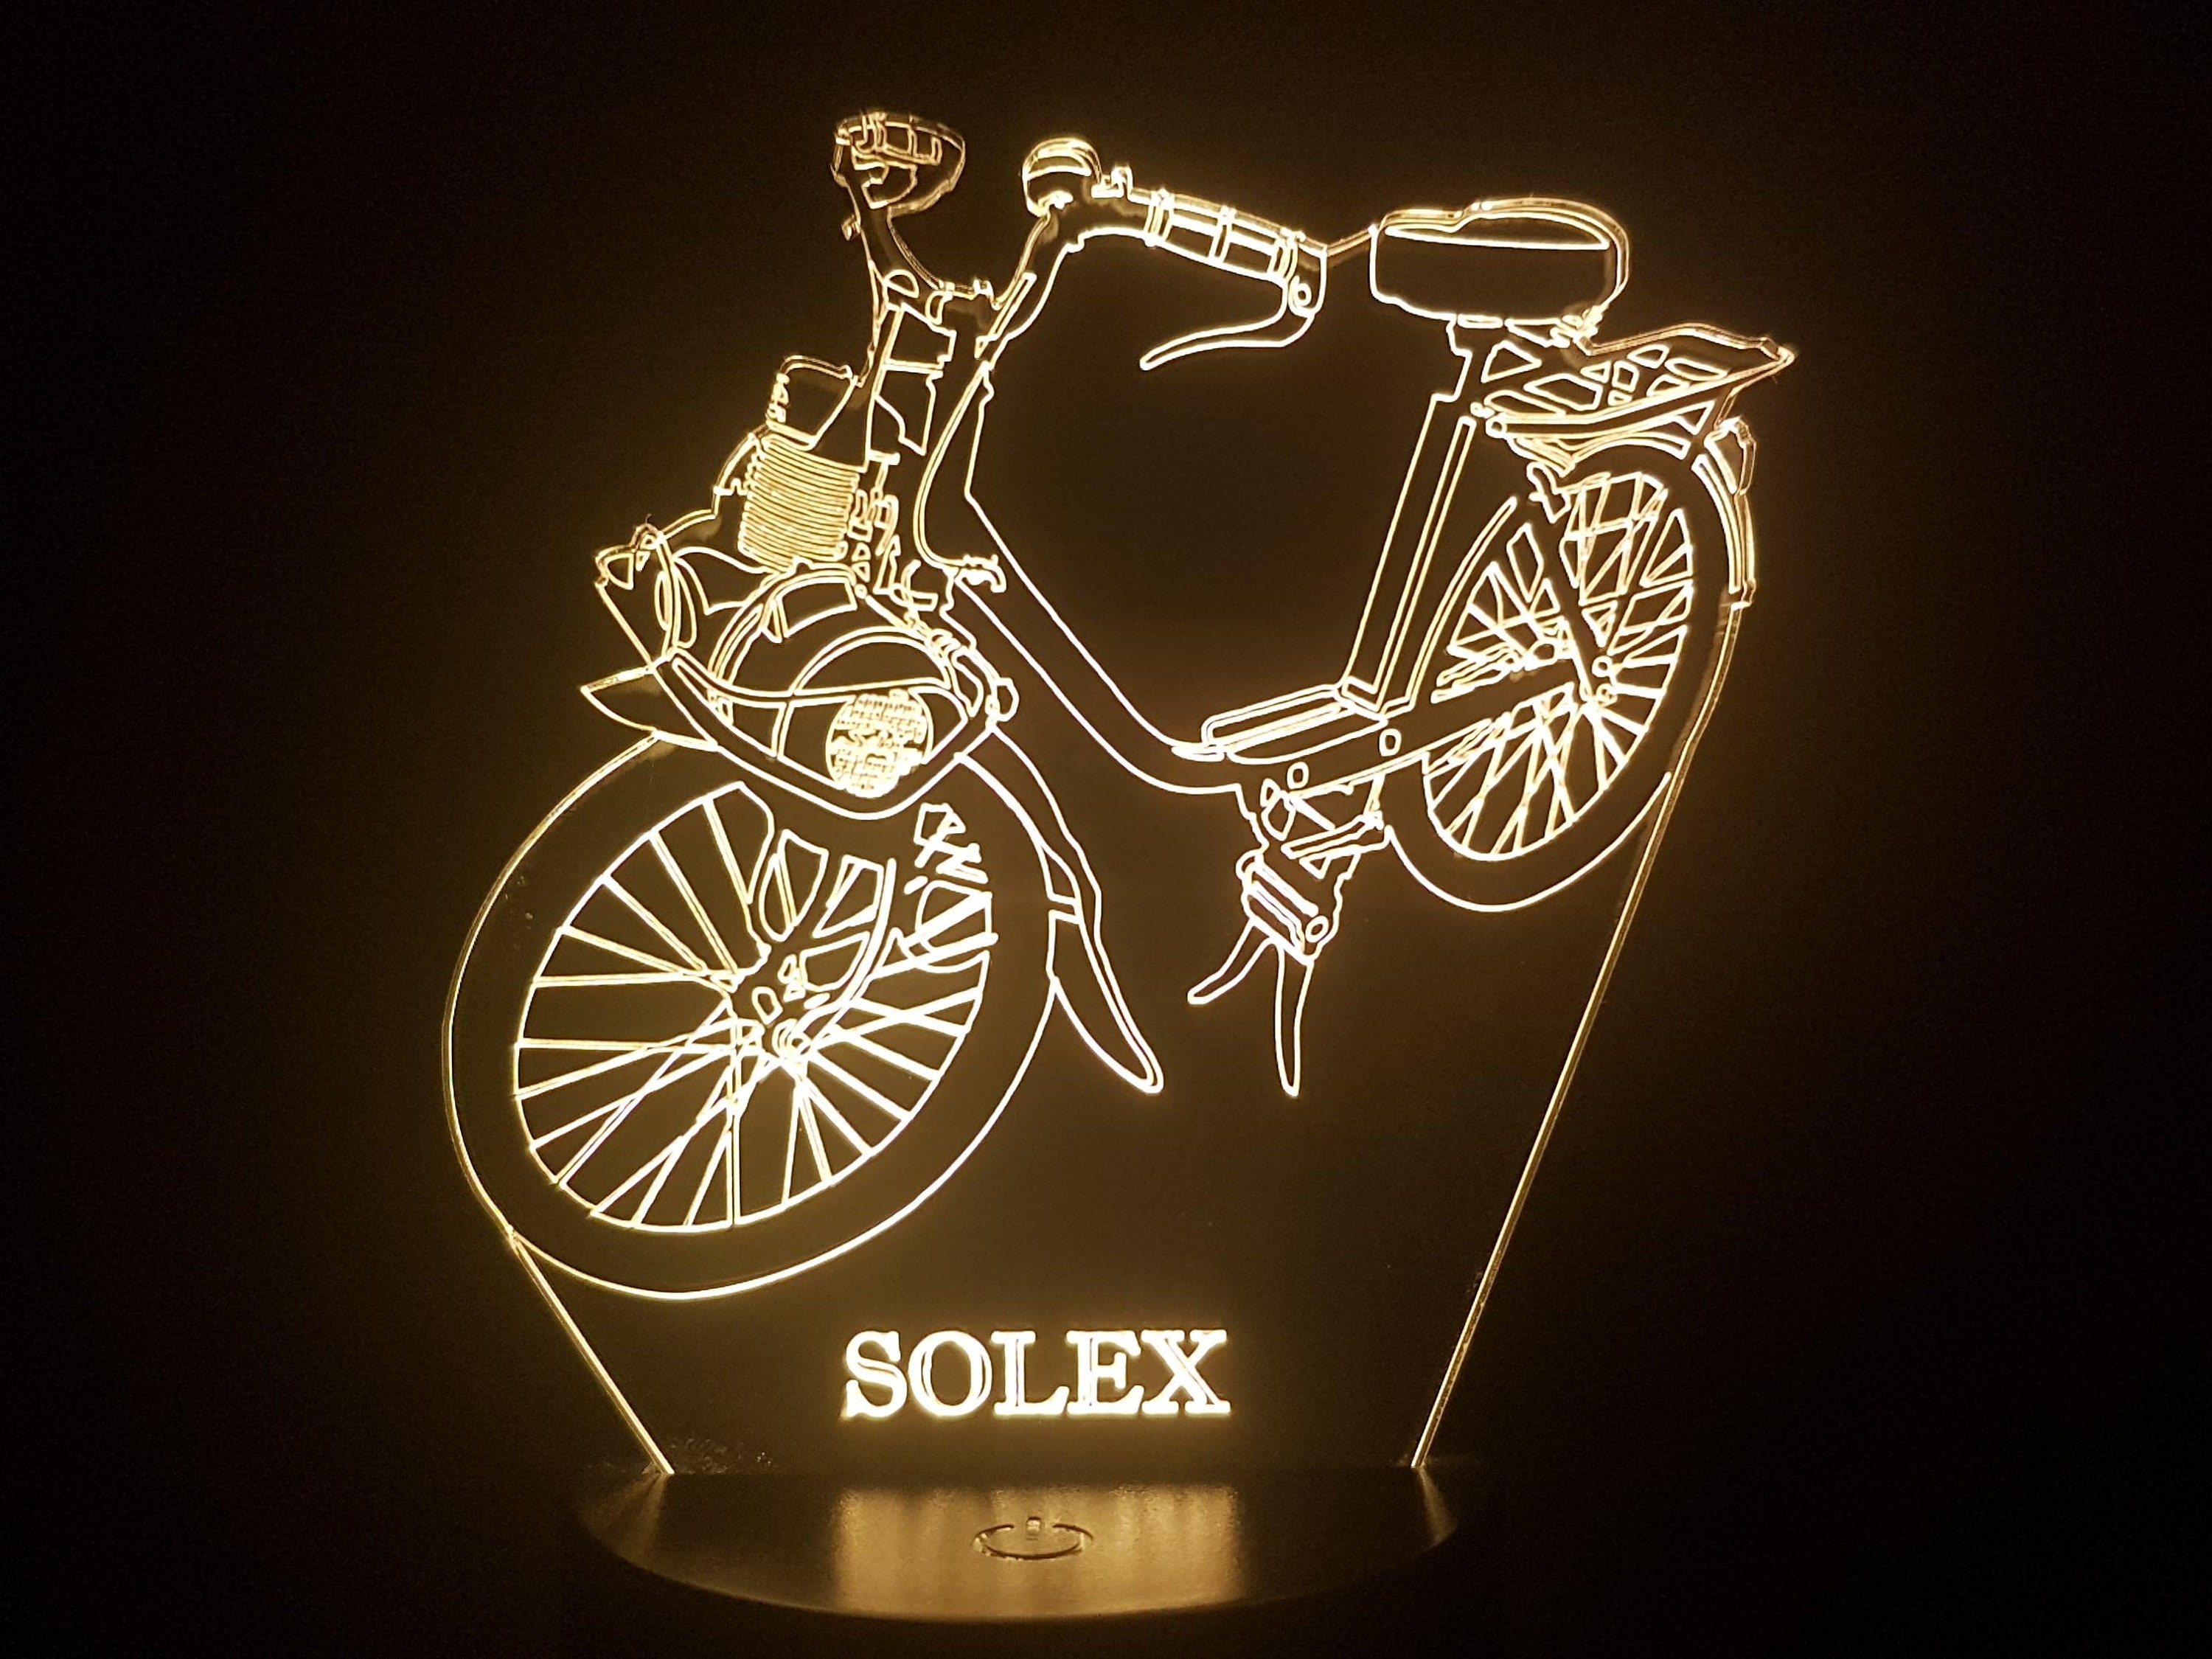 MOPED - Mood lamp 3D led, laser engraving on acrylic